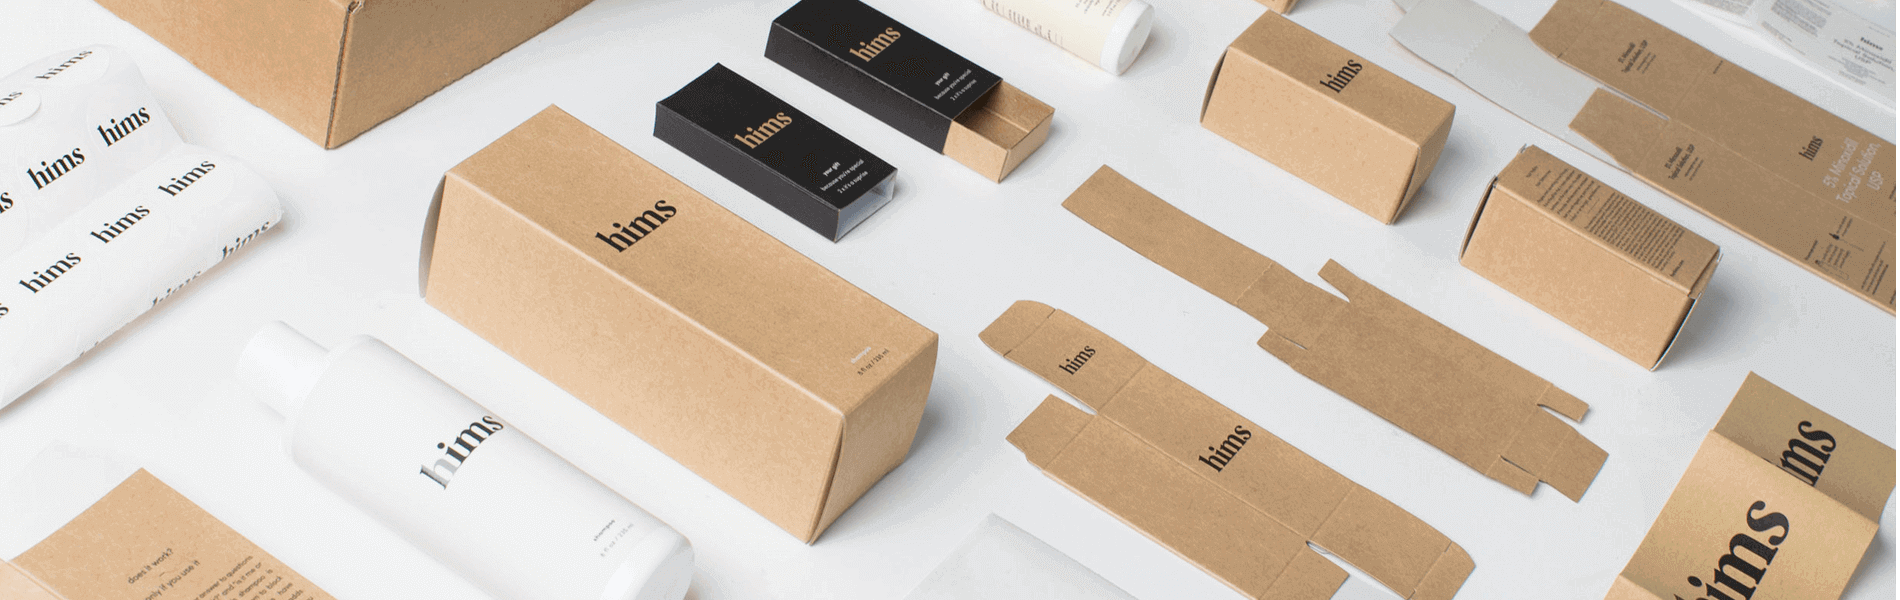 73adda857 How To Choose The Right Box For Your Product? | Packhelp